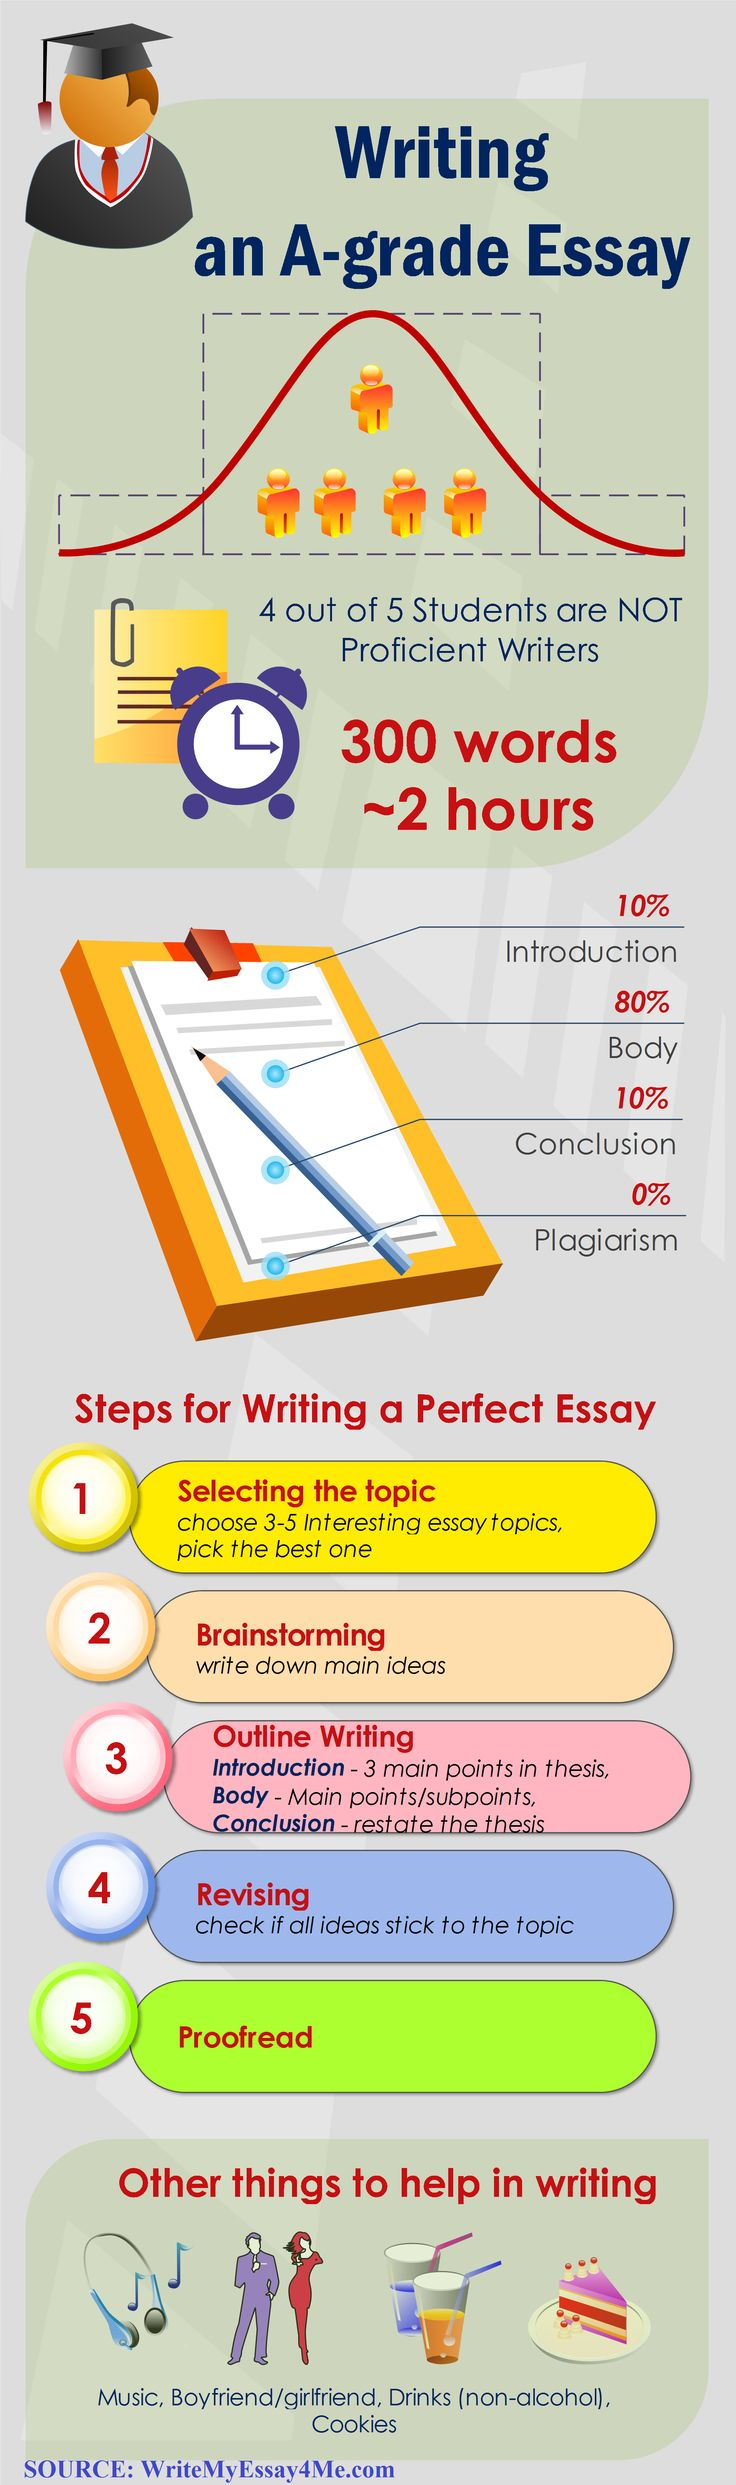 What is some advice on writing an application essay for high school?